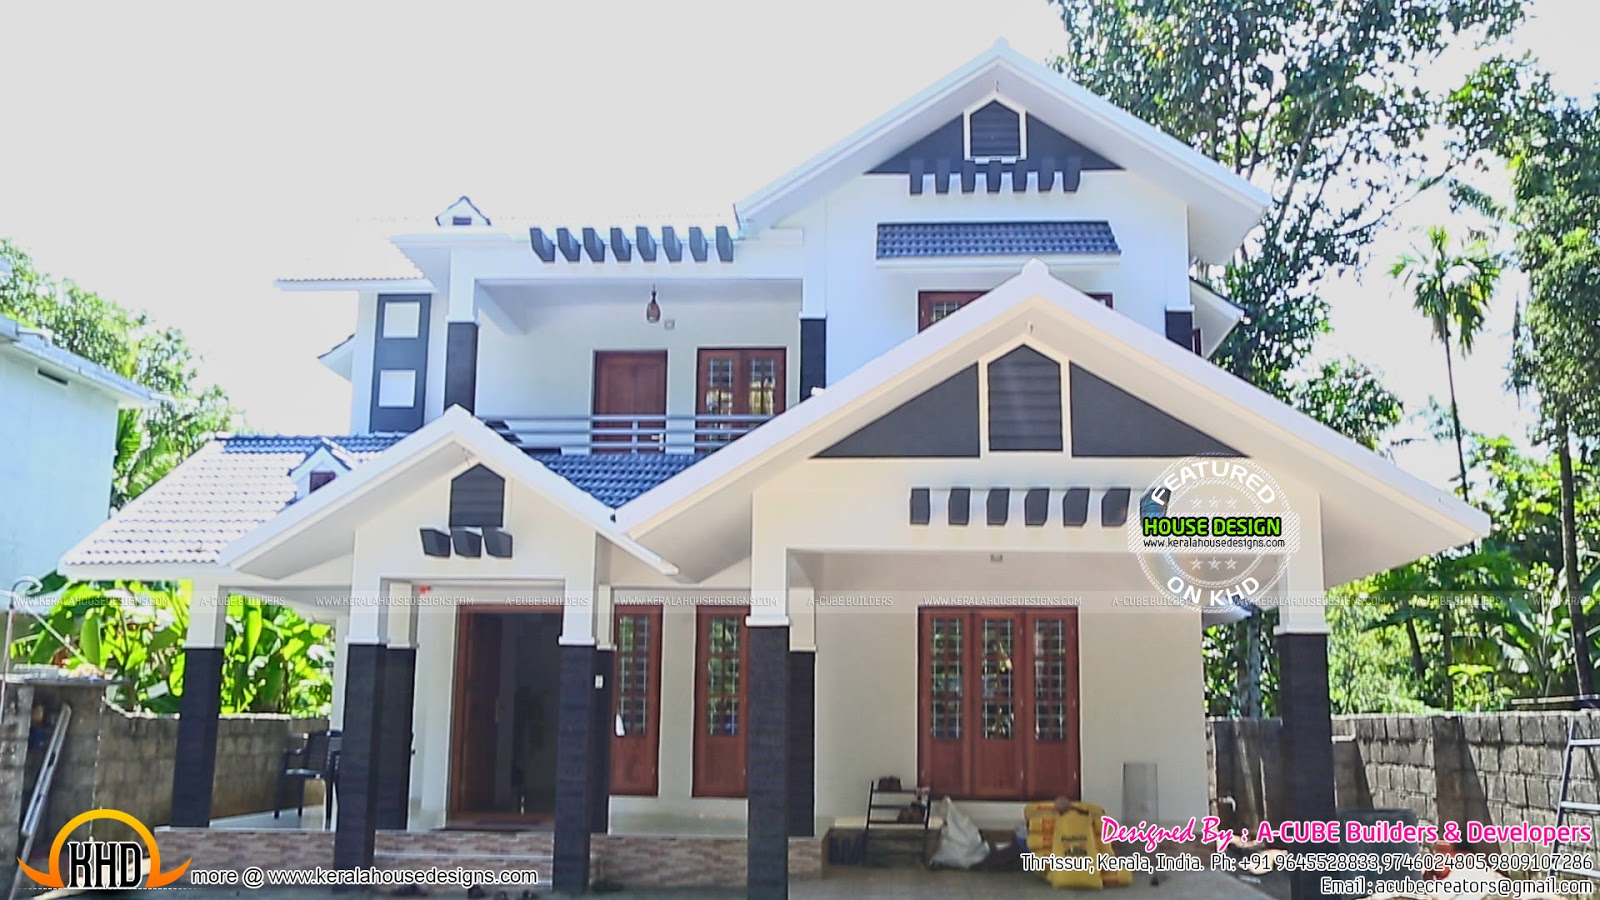 New house plans for 2016 starts here kerala home design for Home design ideas 2016